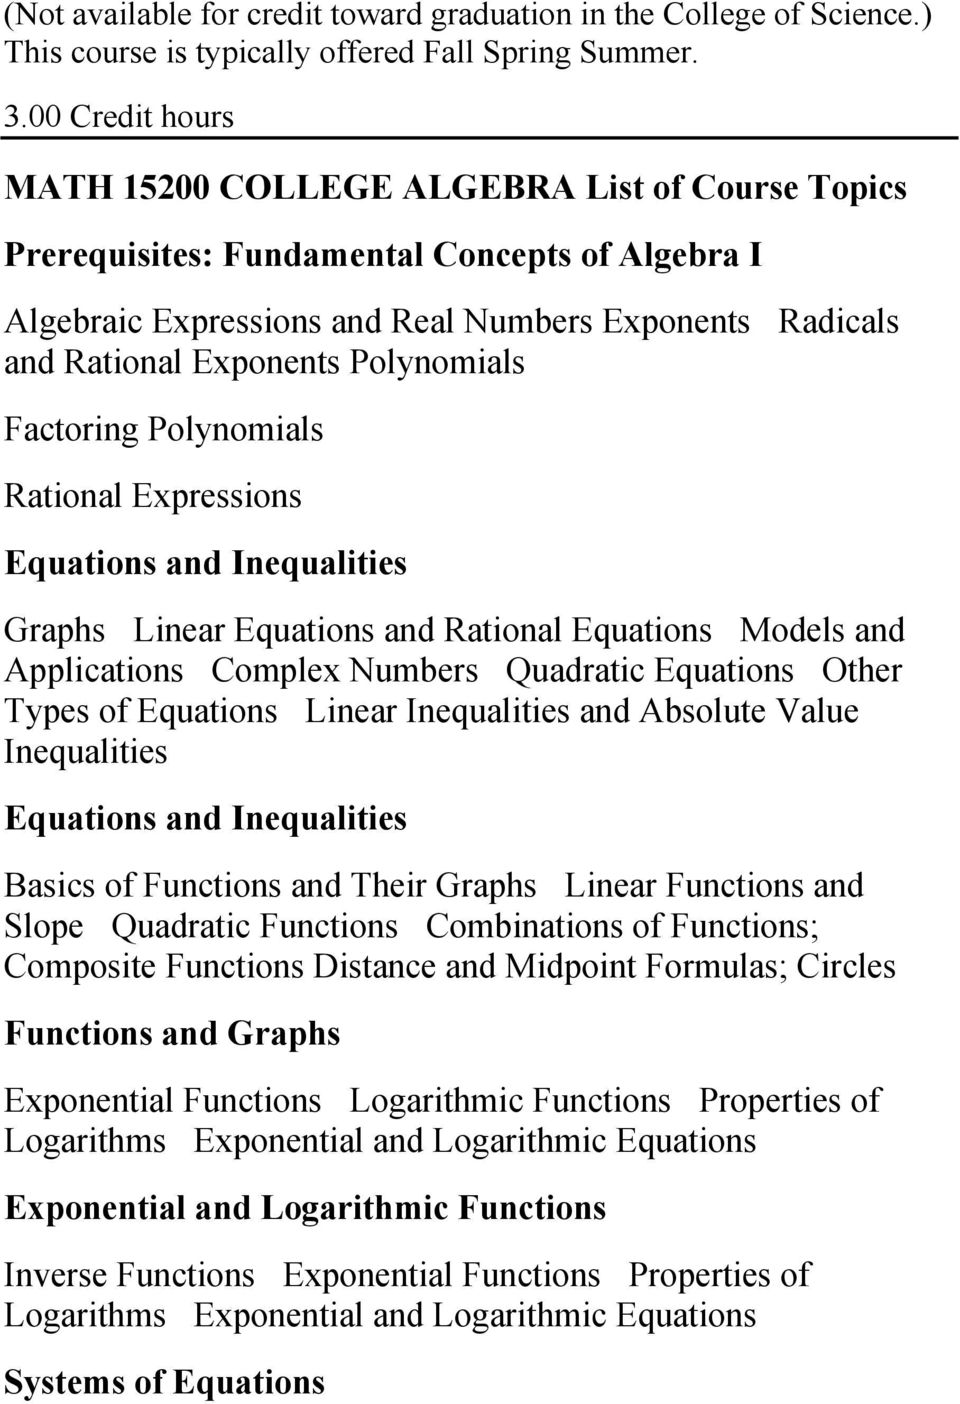 Polynomials Factoring Polynomials Rational Expressions Equations and Inequalities GraphsLinear Equations and Rational EquationsModels and ApplicationsComplex NumbersQuadratic EquationsOther Types of